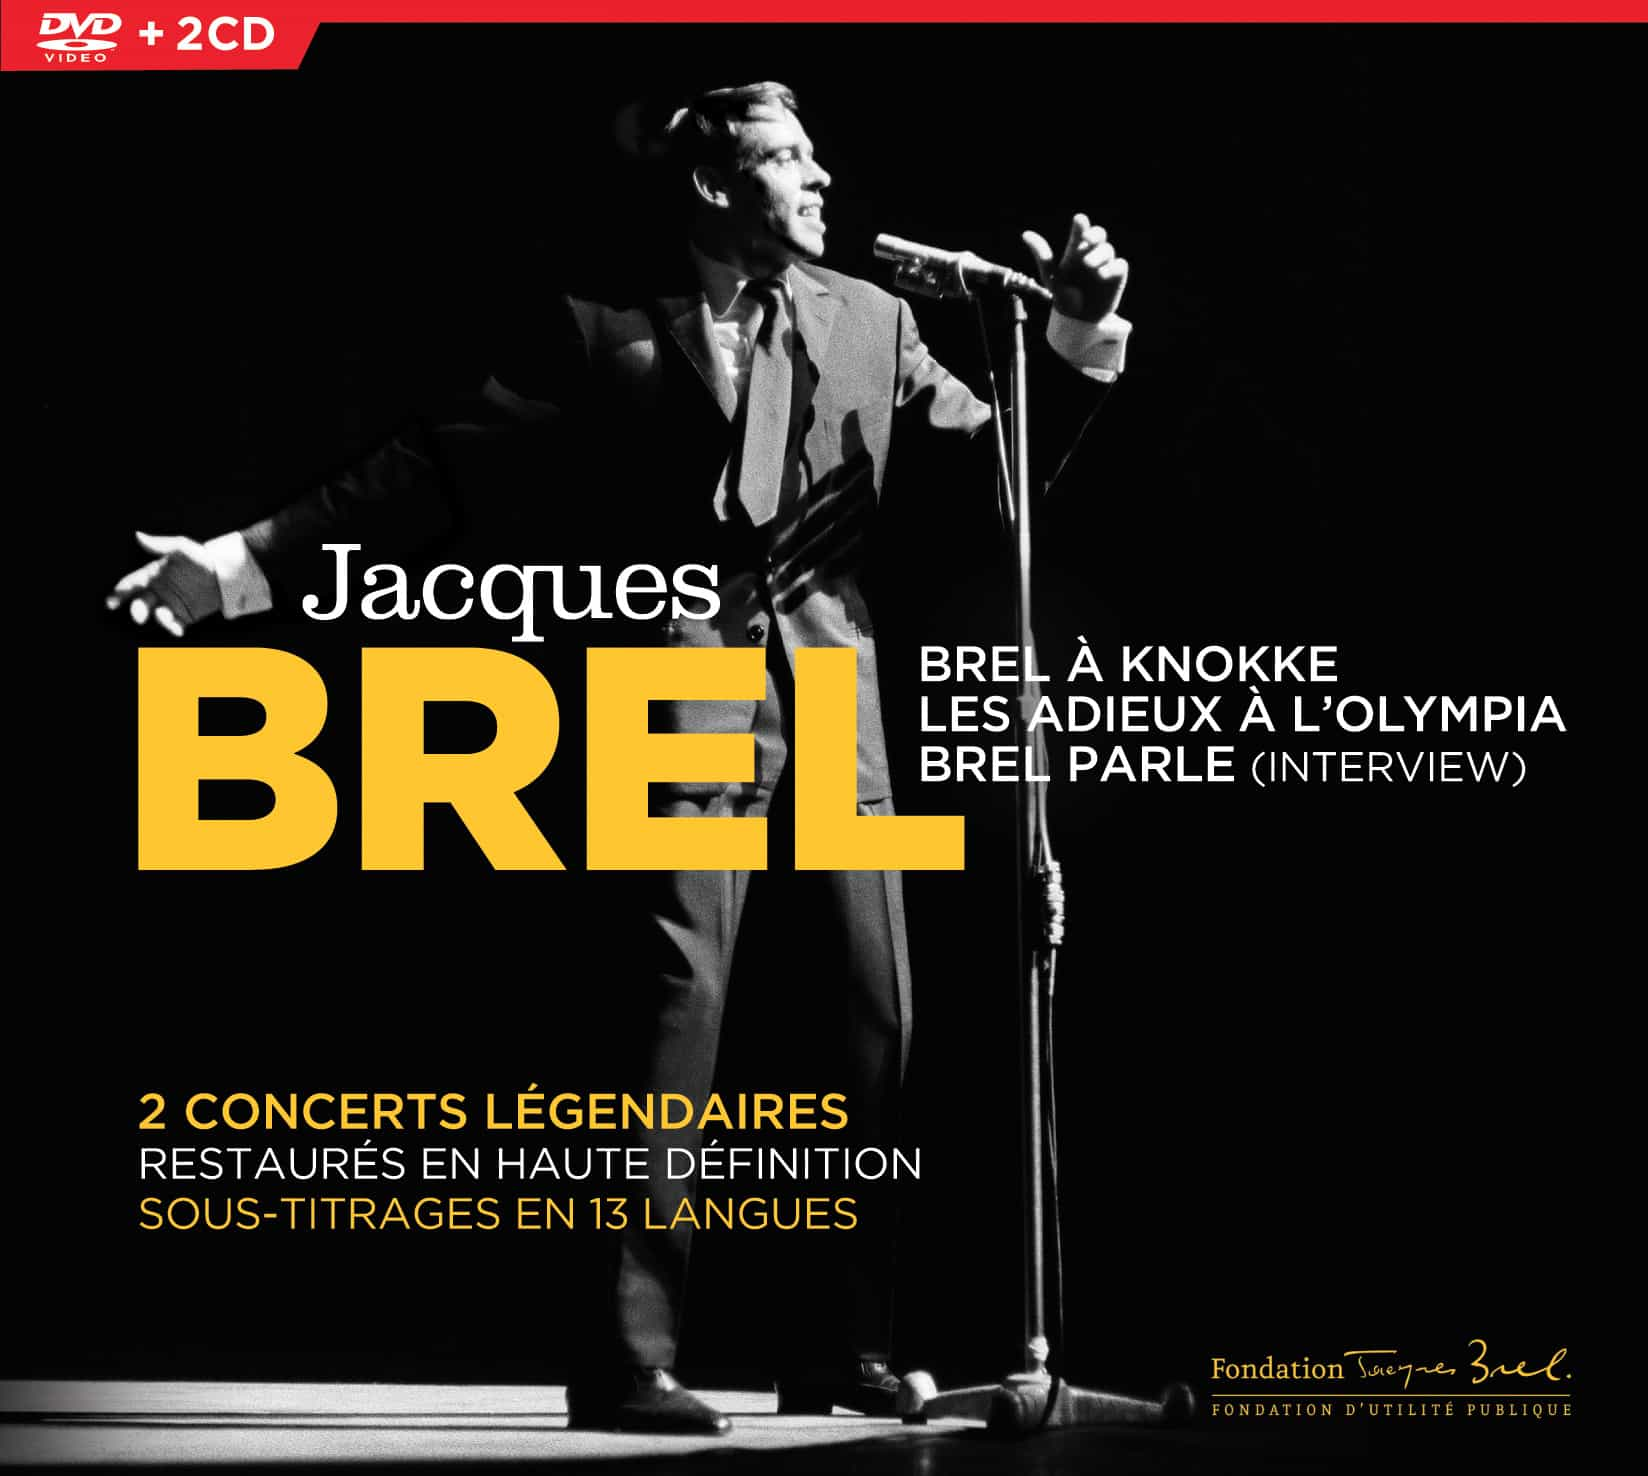 Brel en concerts et en interview DVD